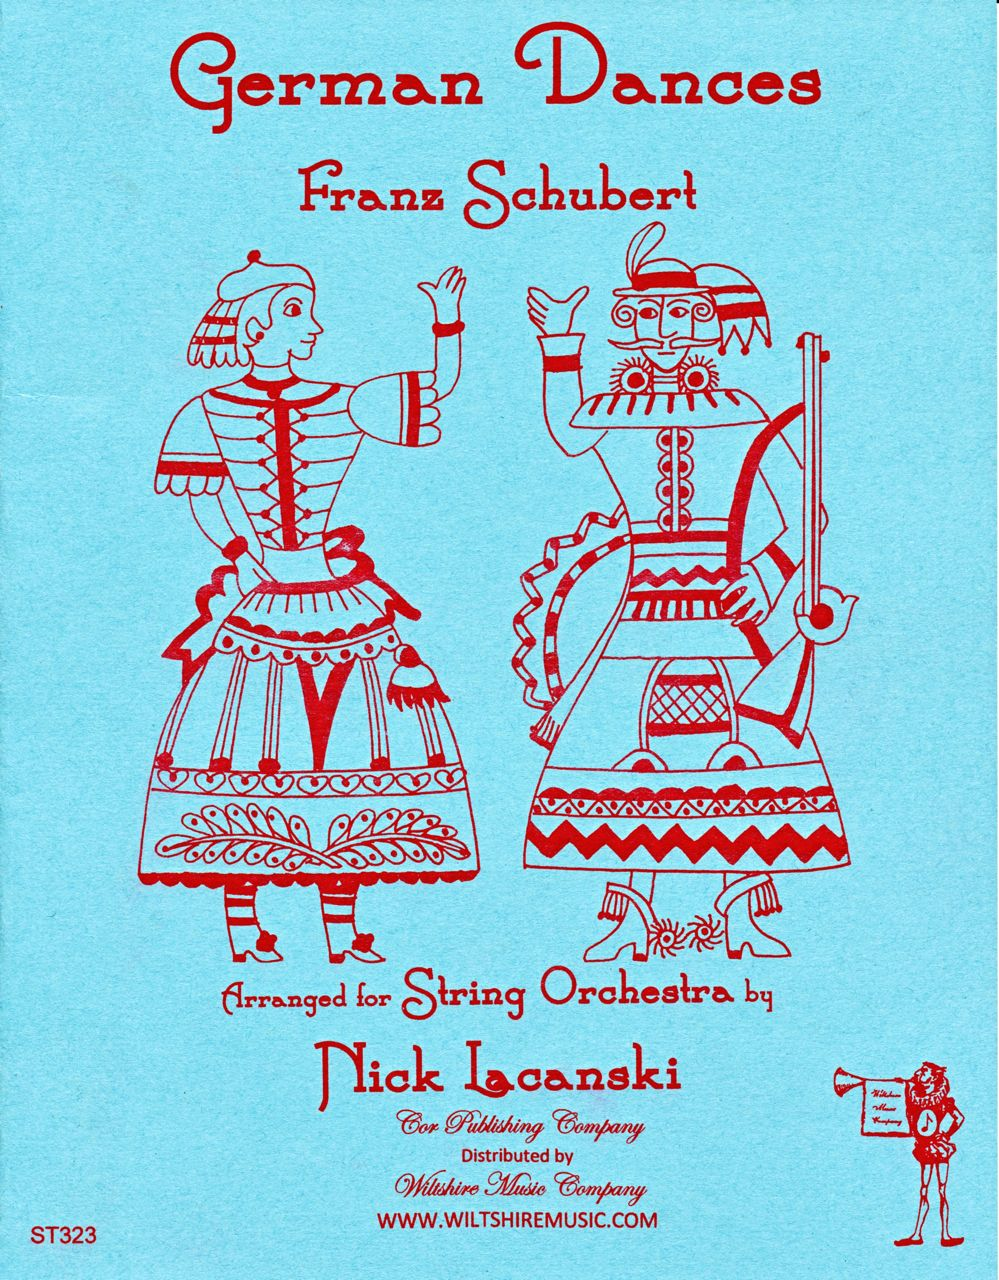 German Dances, Franz Schubert (Lacanski)